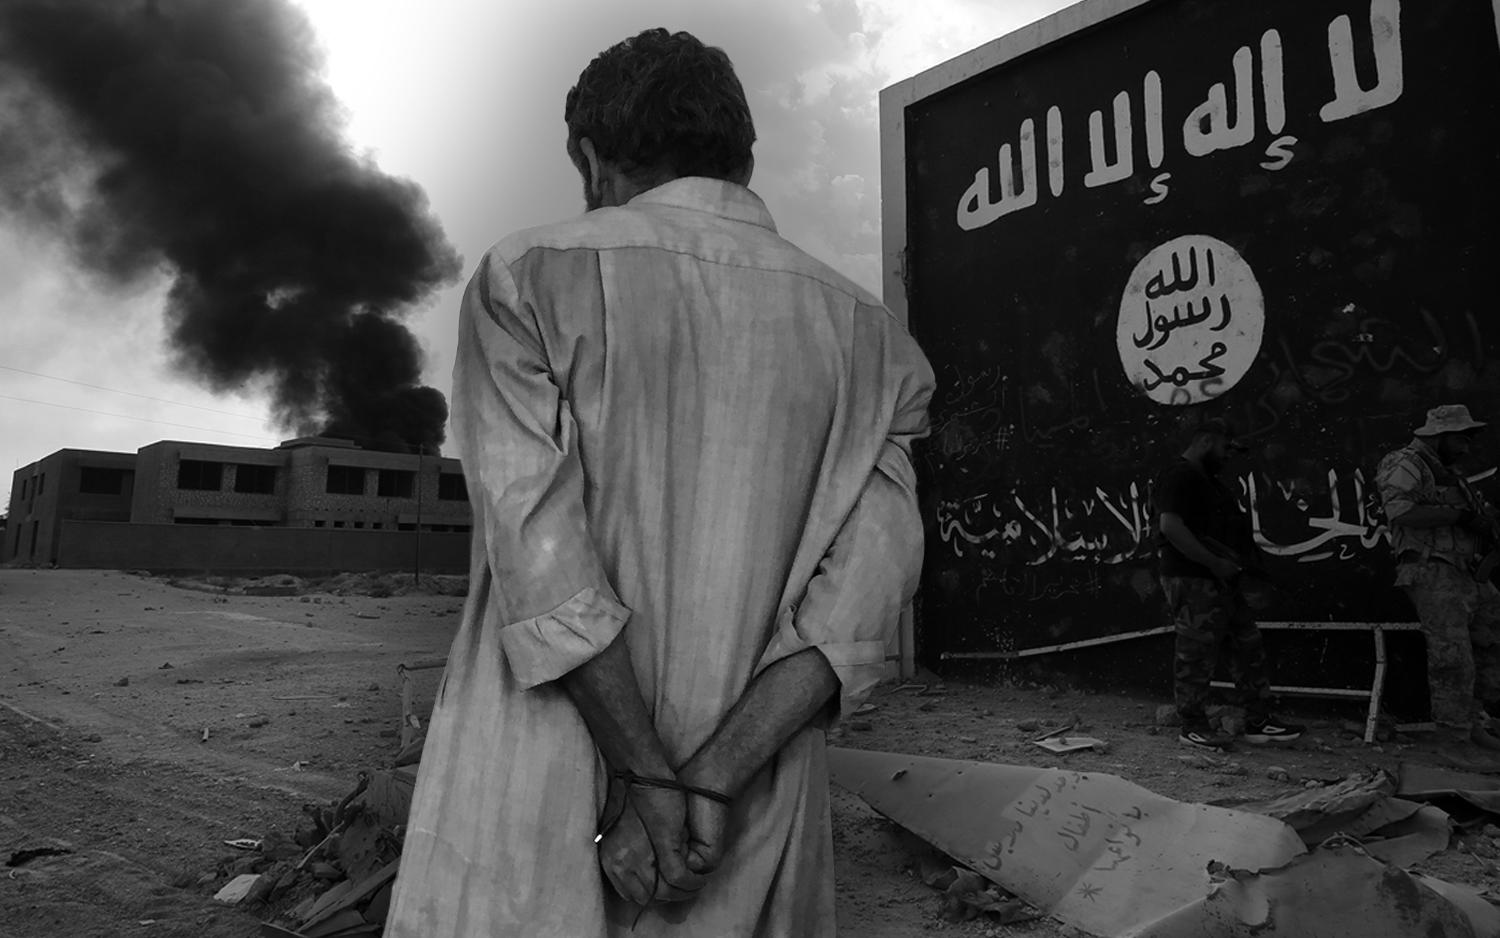 For captured ISIS fighters in Iraq, justice is swift and conviction certain